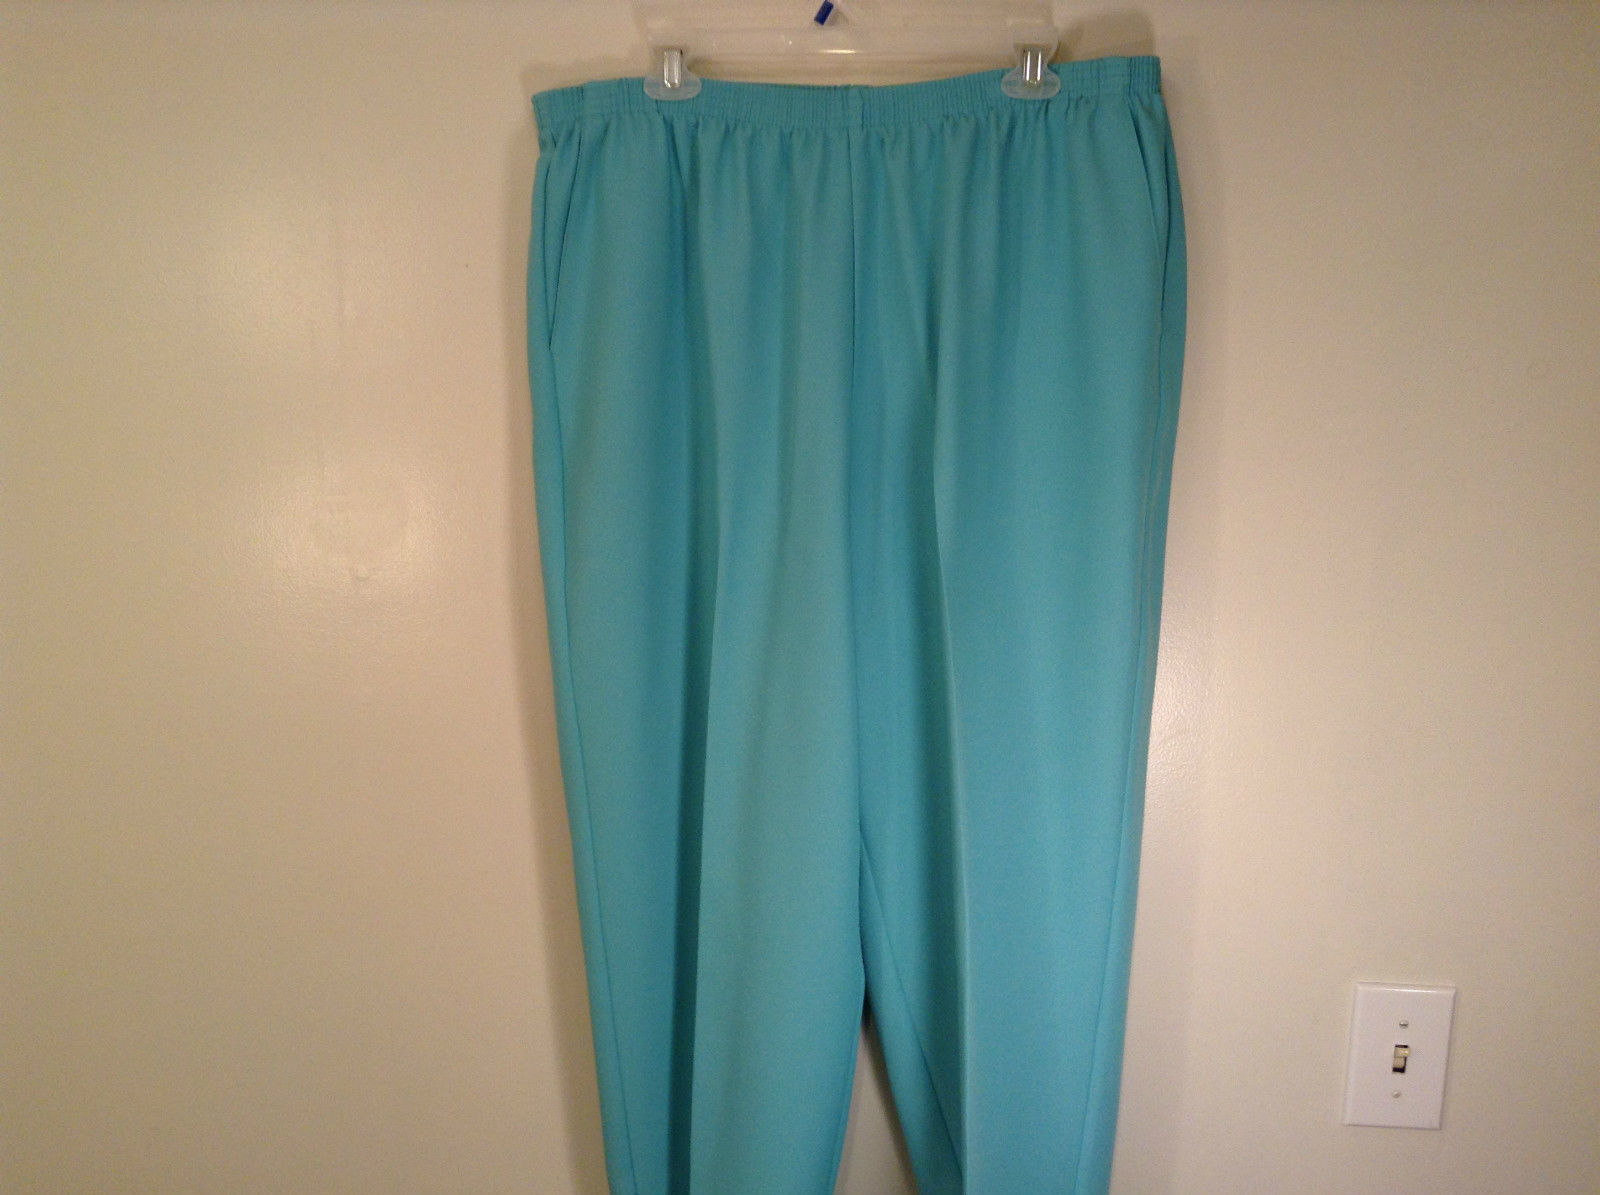 Size 20W Stretchy Waist Alfred Dunner Blue Pants Side Pockets Made in USA